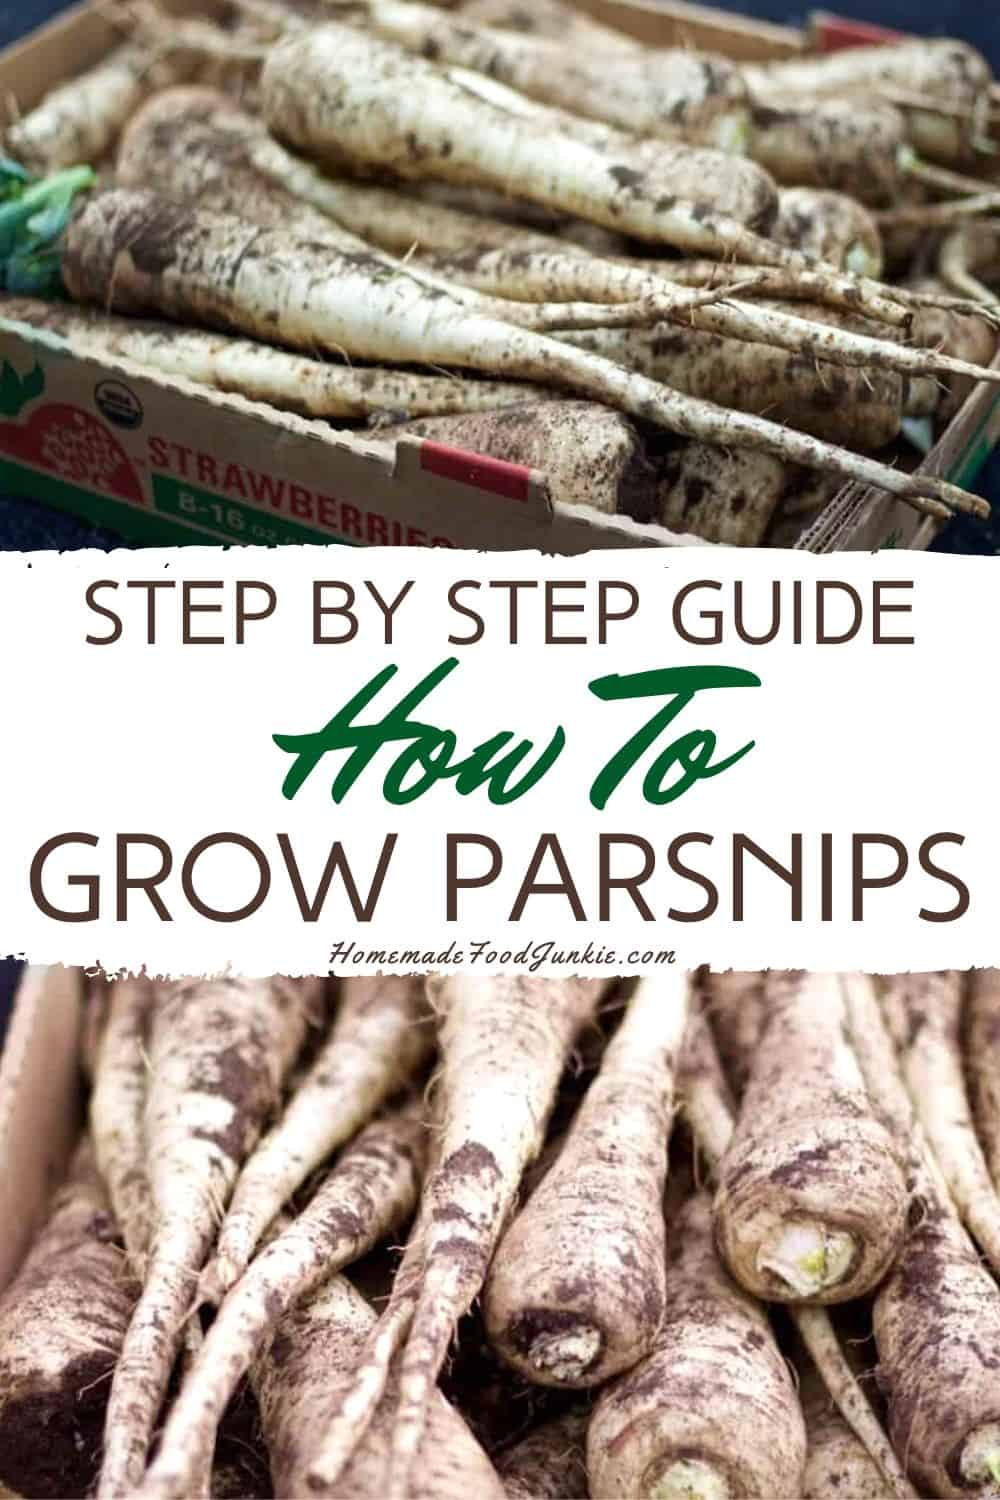 step by step guide how to grow parsnips-pin image